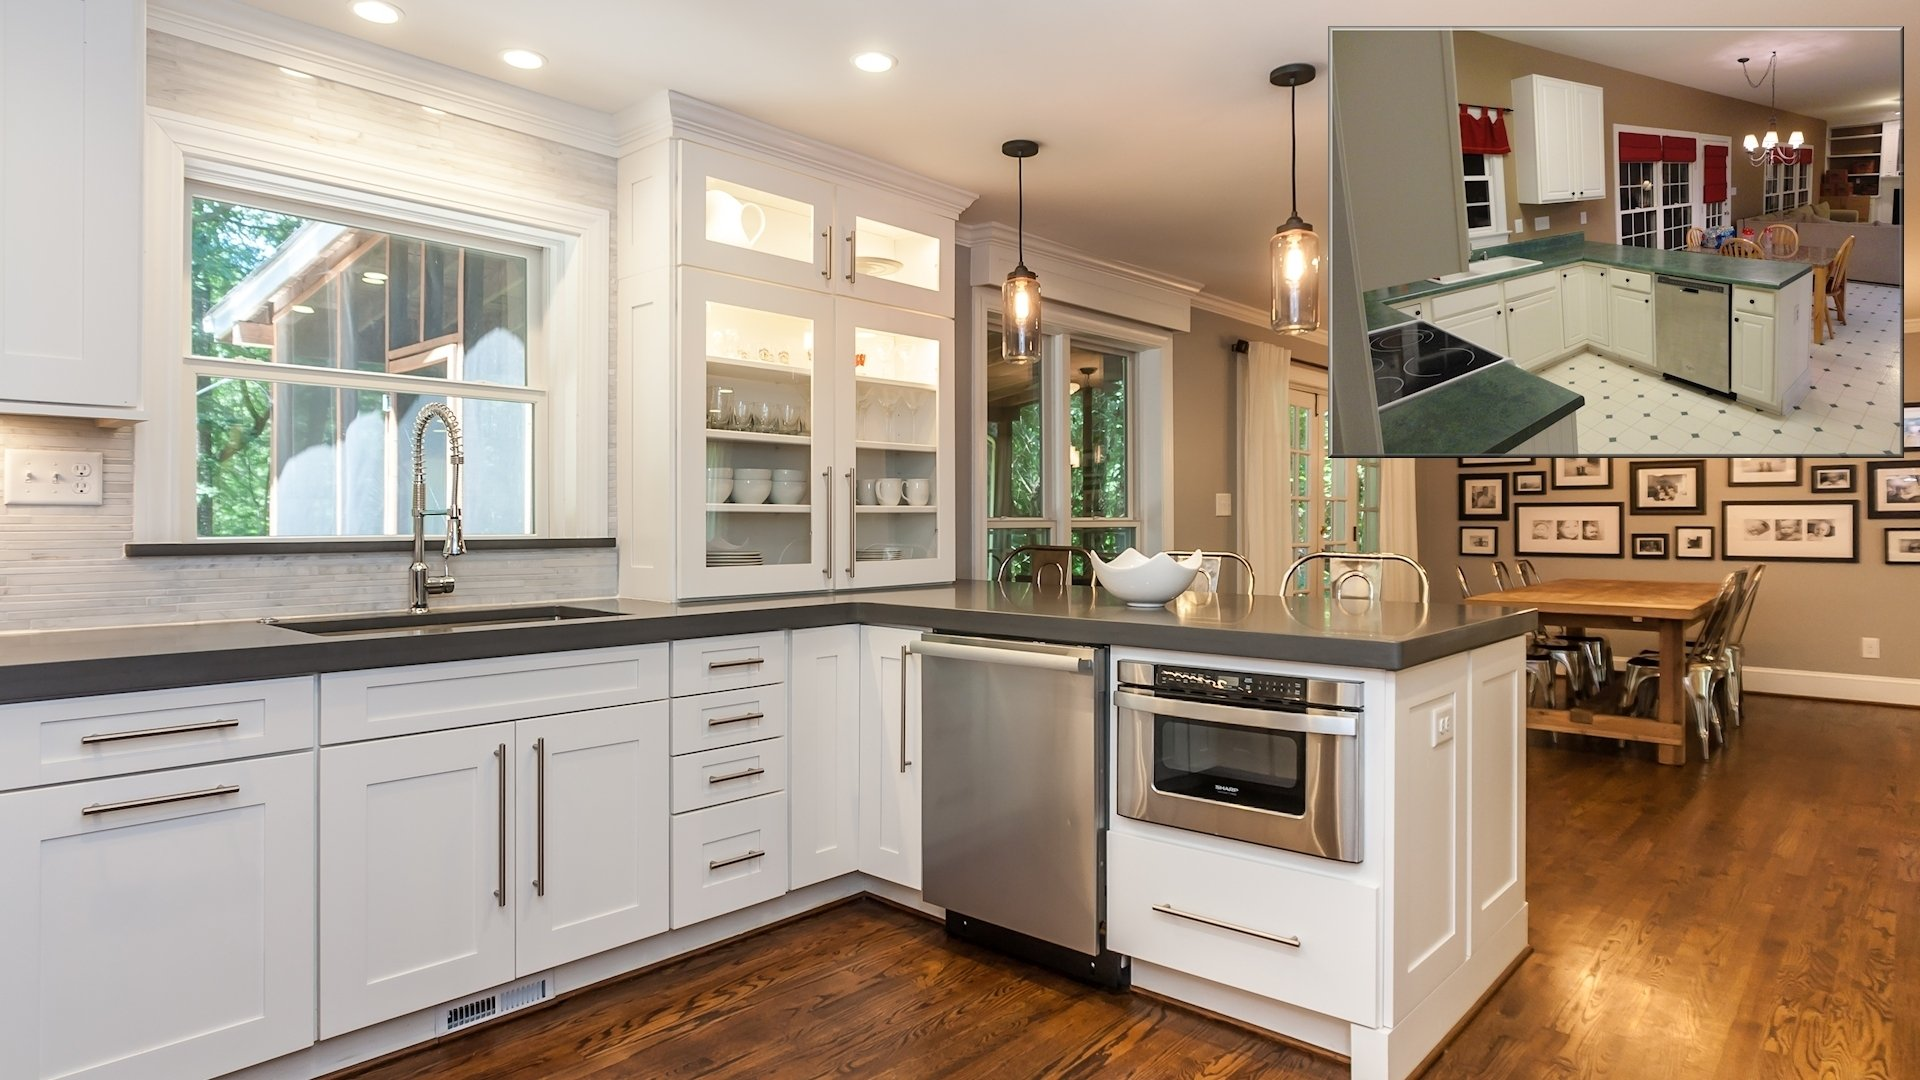 10 Trendy House Remodeling Ideas For Small Homes home remodeling making a great before after new homes ideas 2021